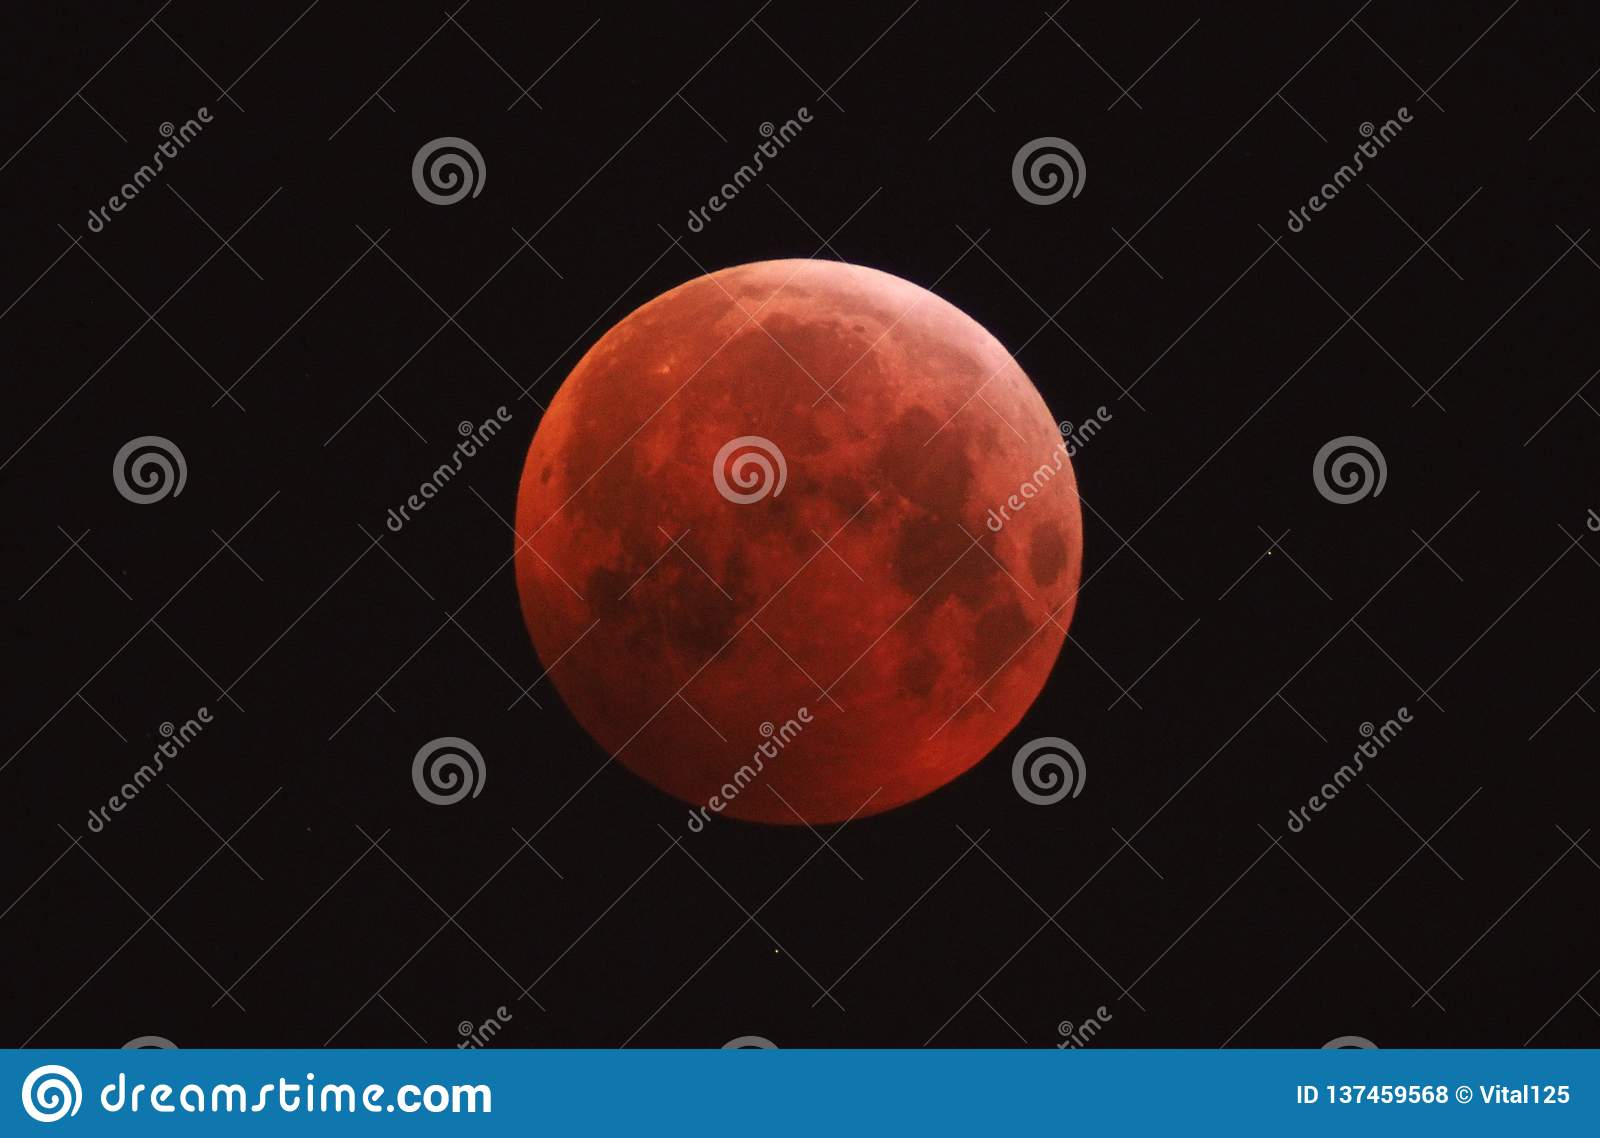 Lunar Eclipse, blood Moon, night sky stars